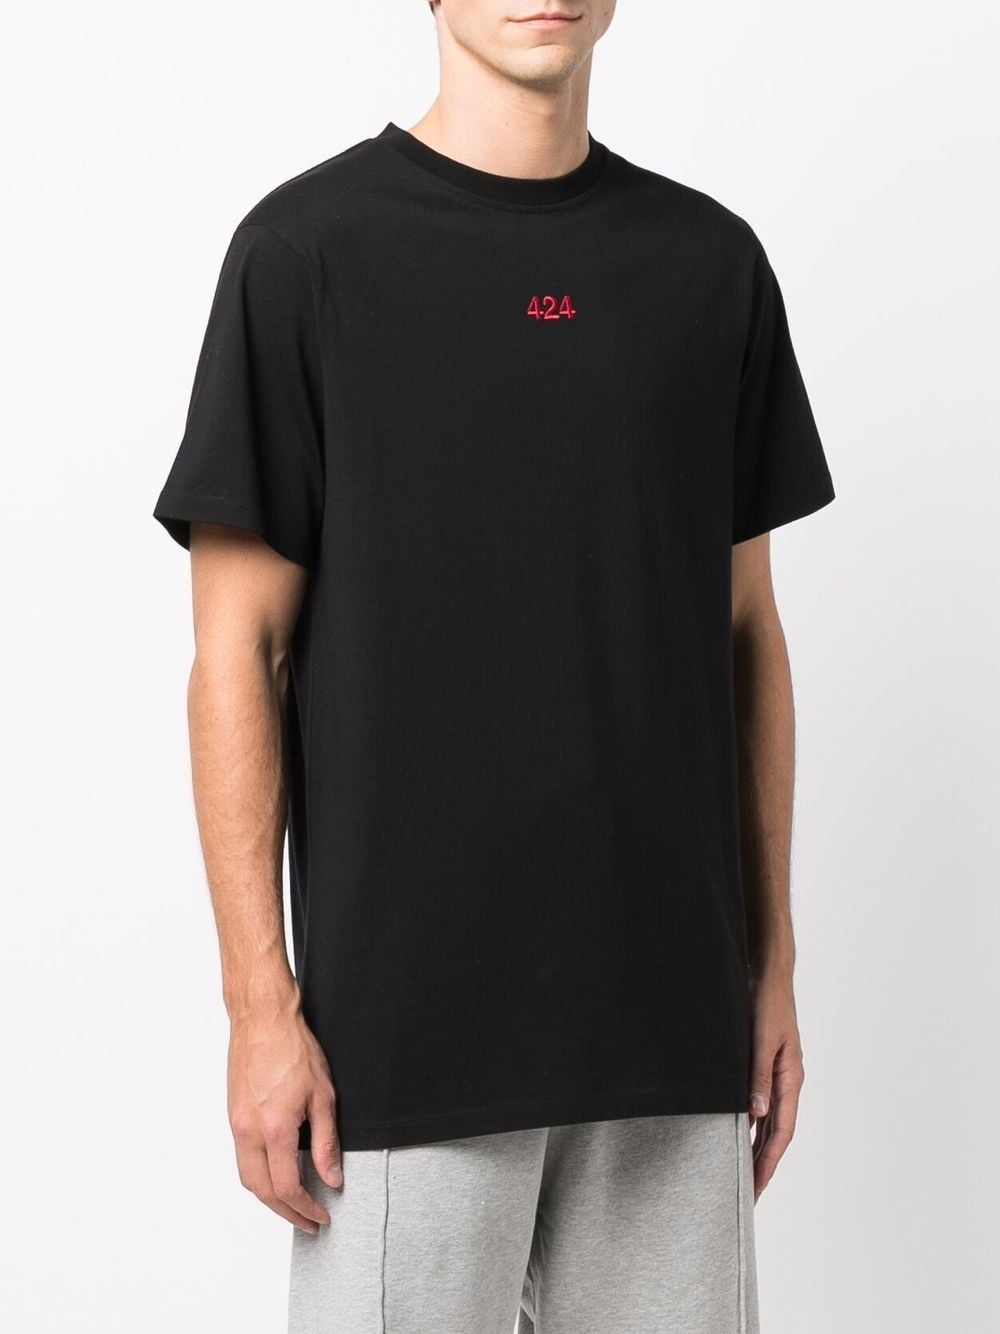 Picture of 424 | Embroidered Logo T-Shirt